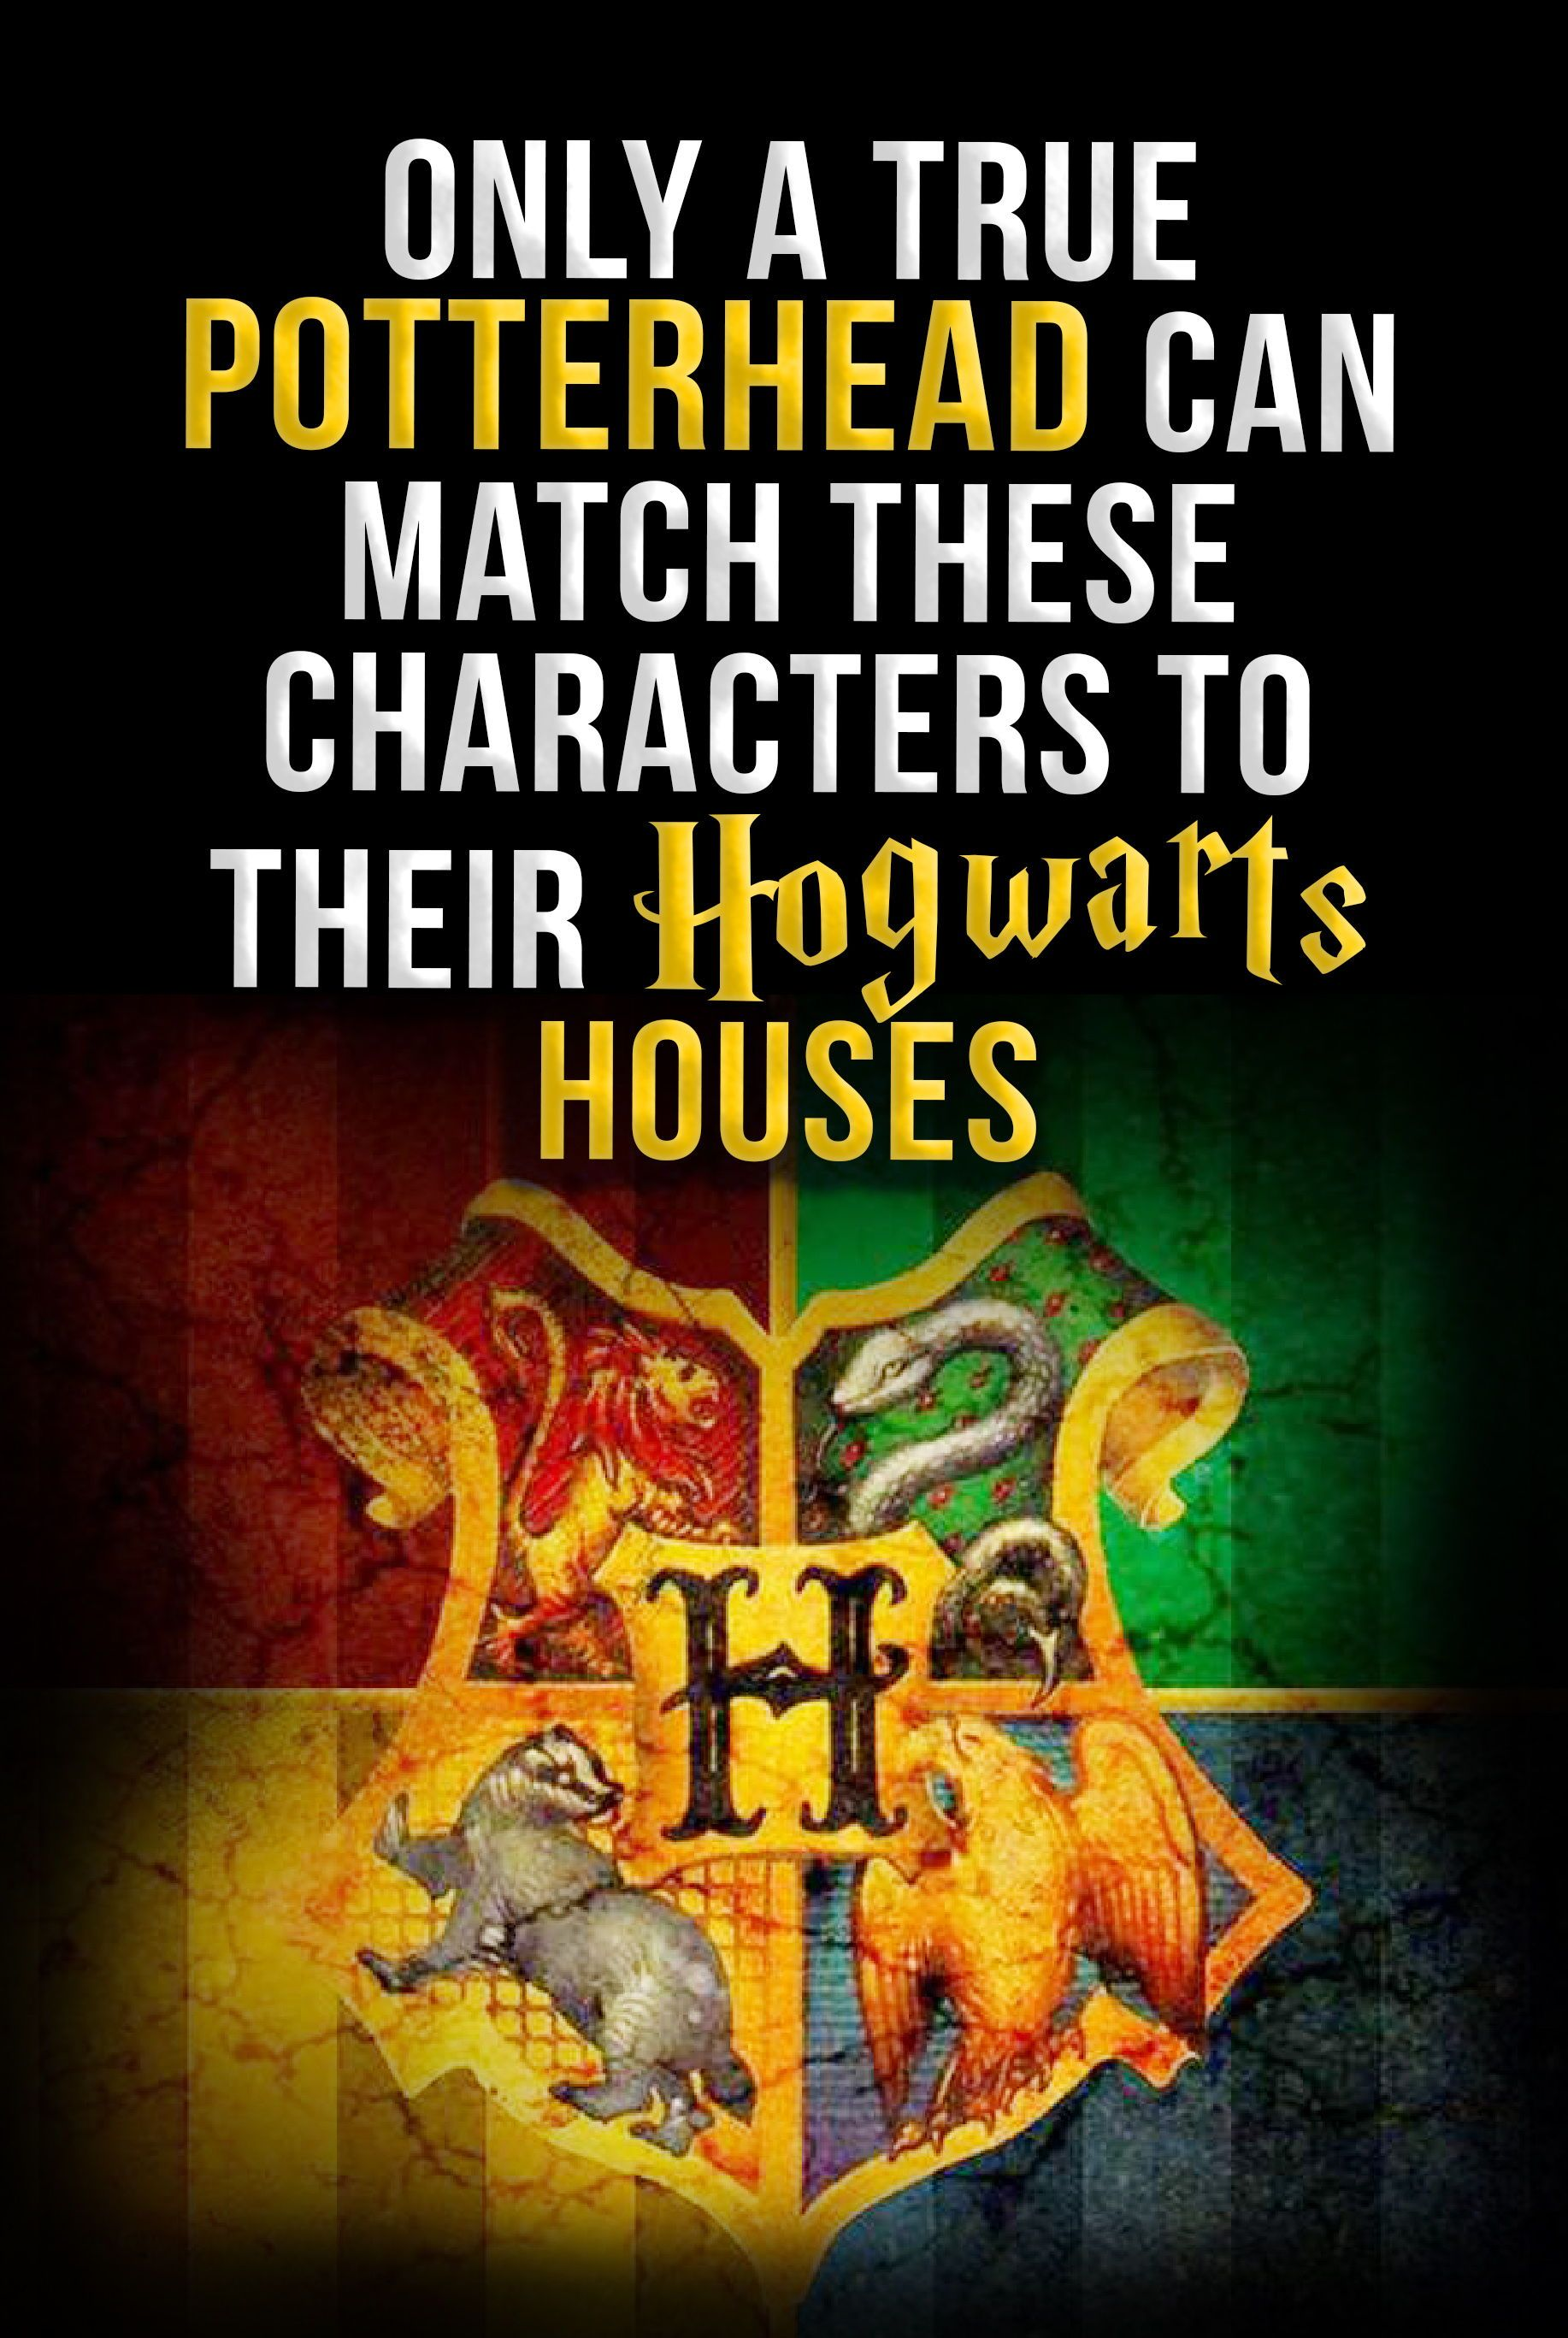 Only A True Potterhead Can Match These Characters To Their Hogwarts Houses